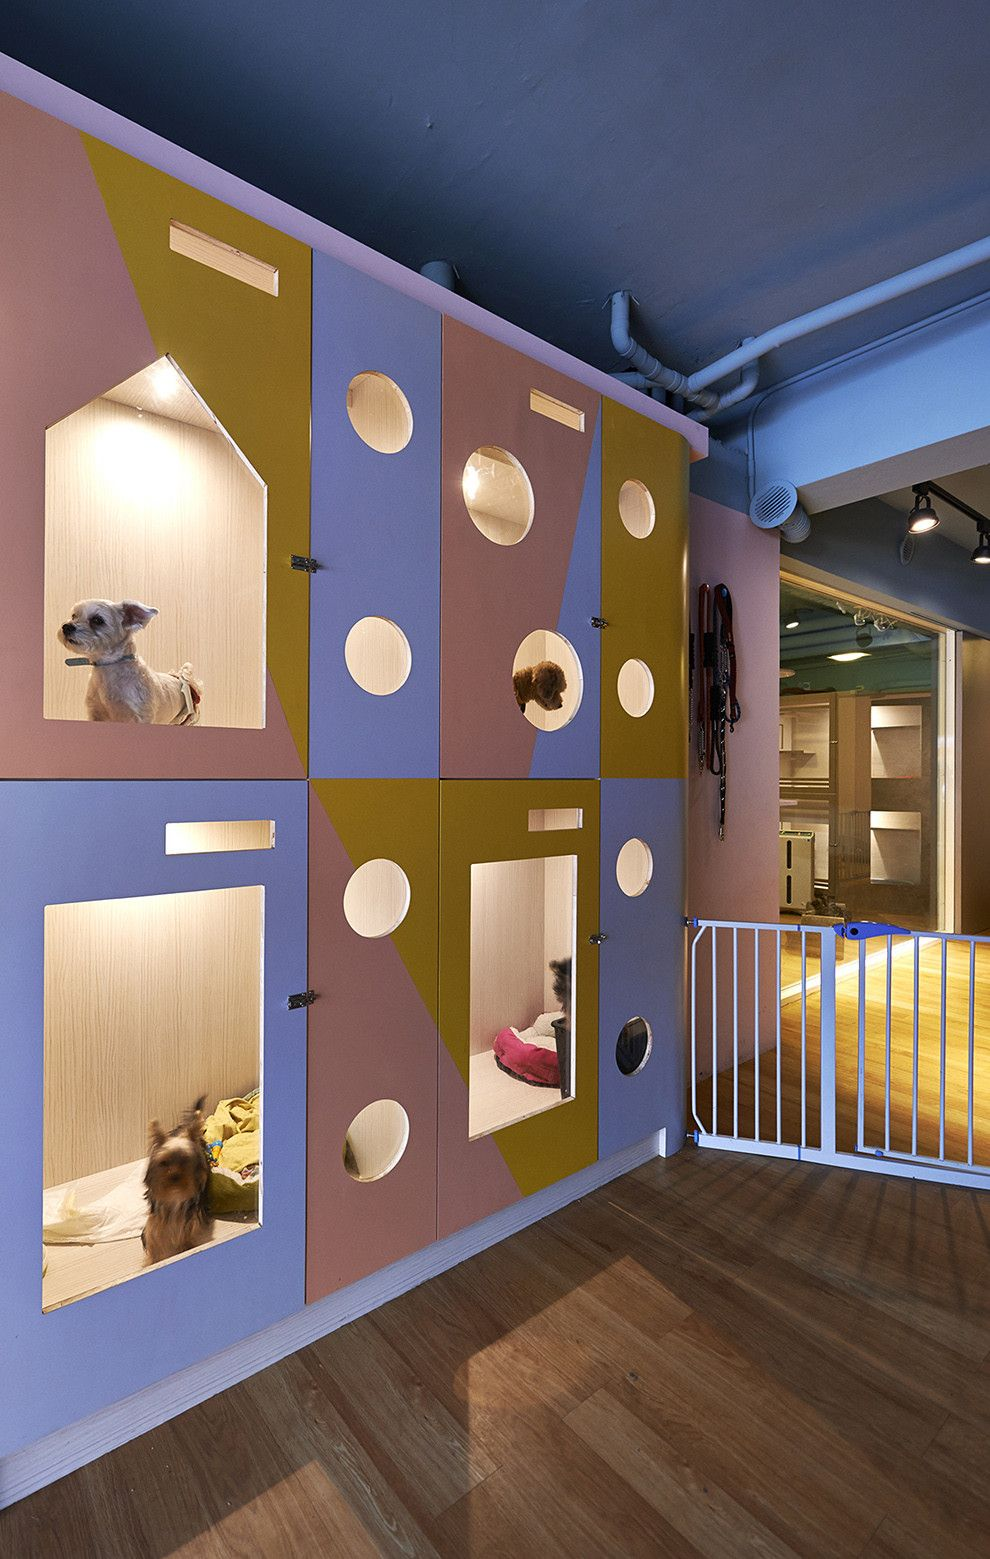 Gallery of Petaholic Hotel / sms design 2 Pet clinic